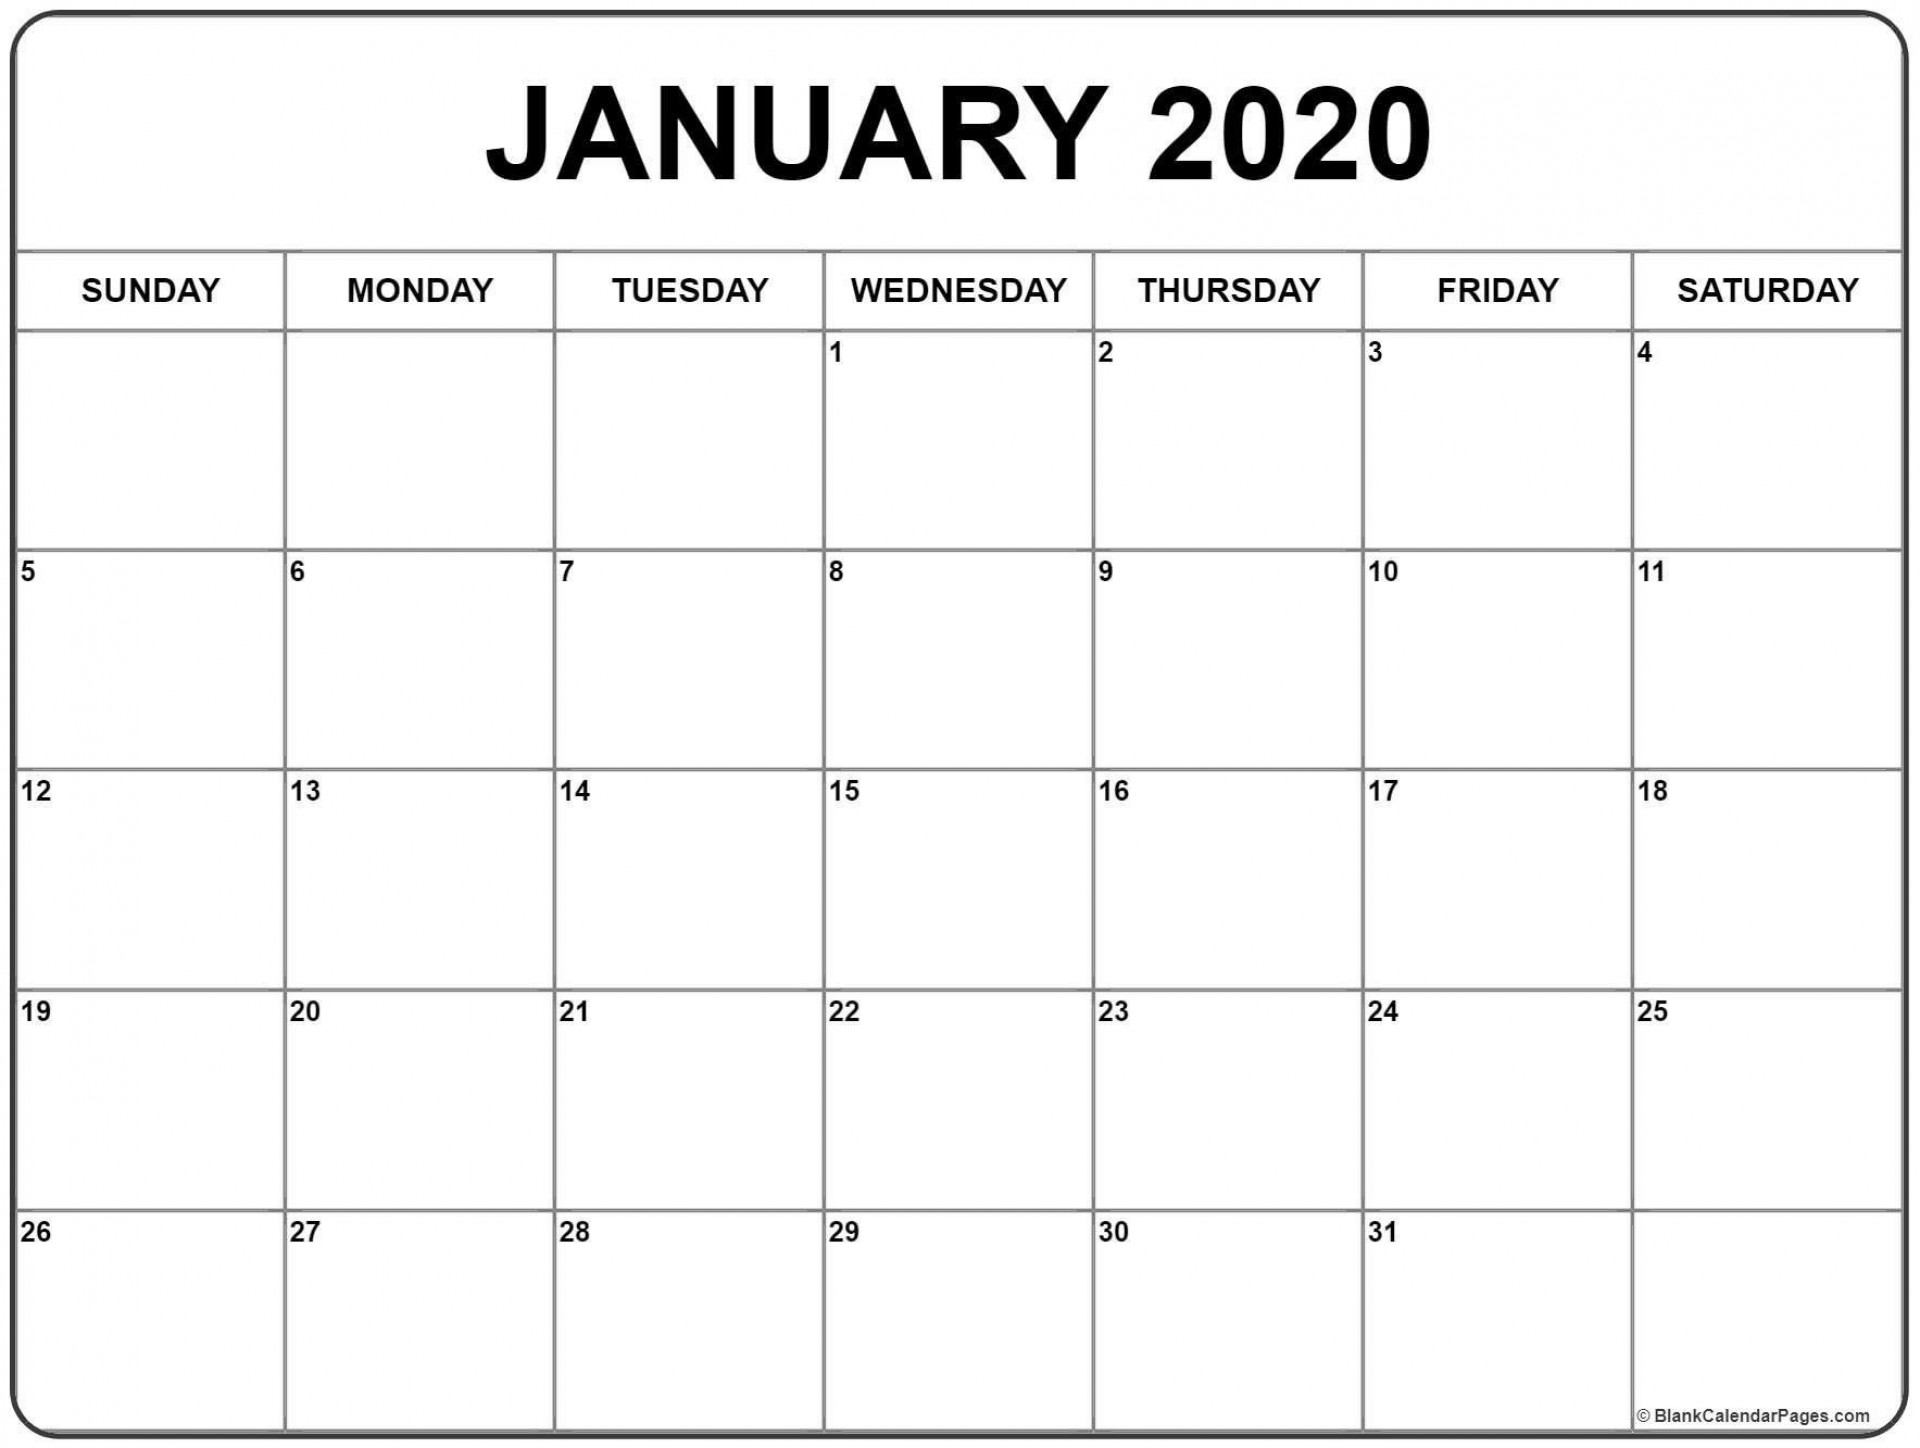 005 Dreaded Monthly Calendar Template 2020 High Def  Editable Free Word Excel May1920